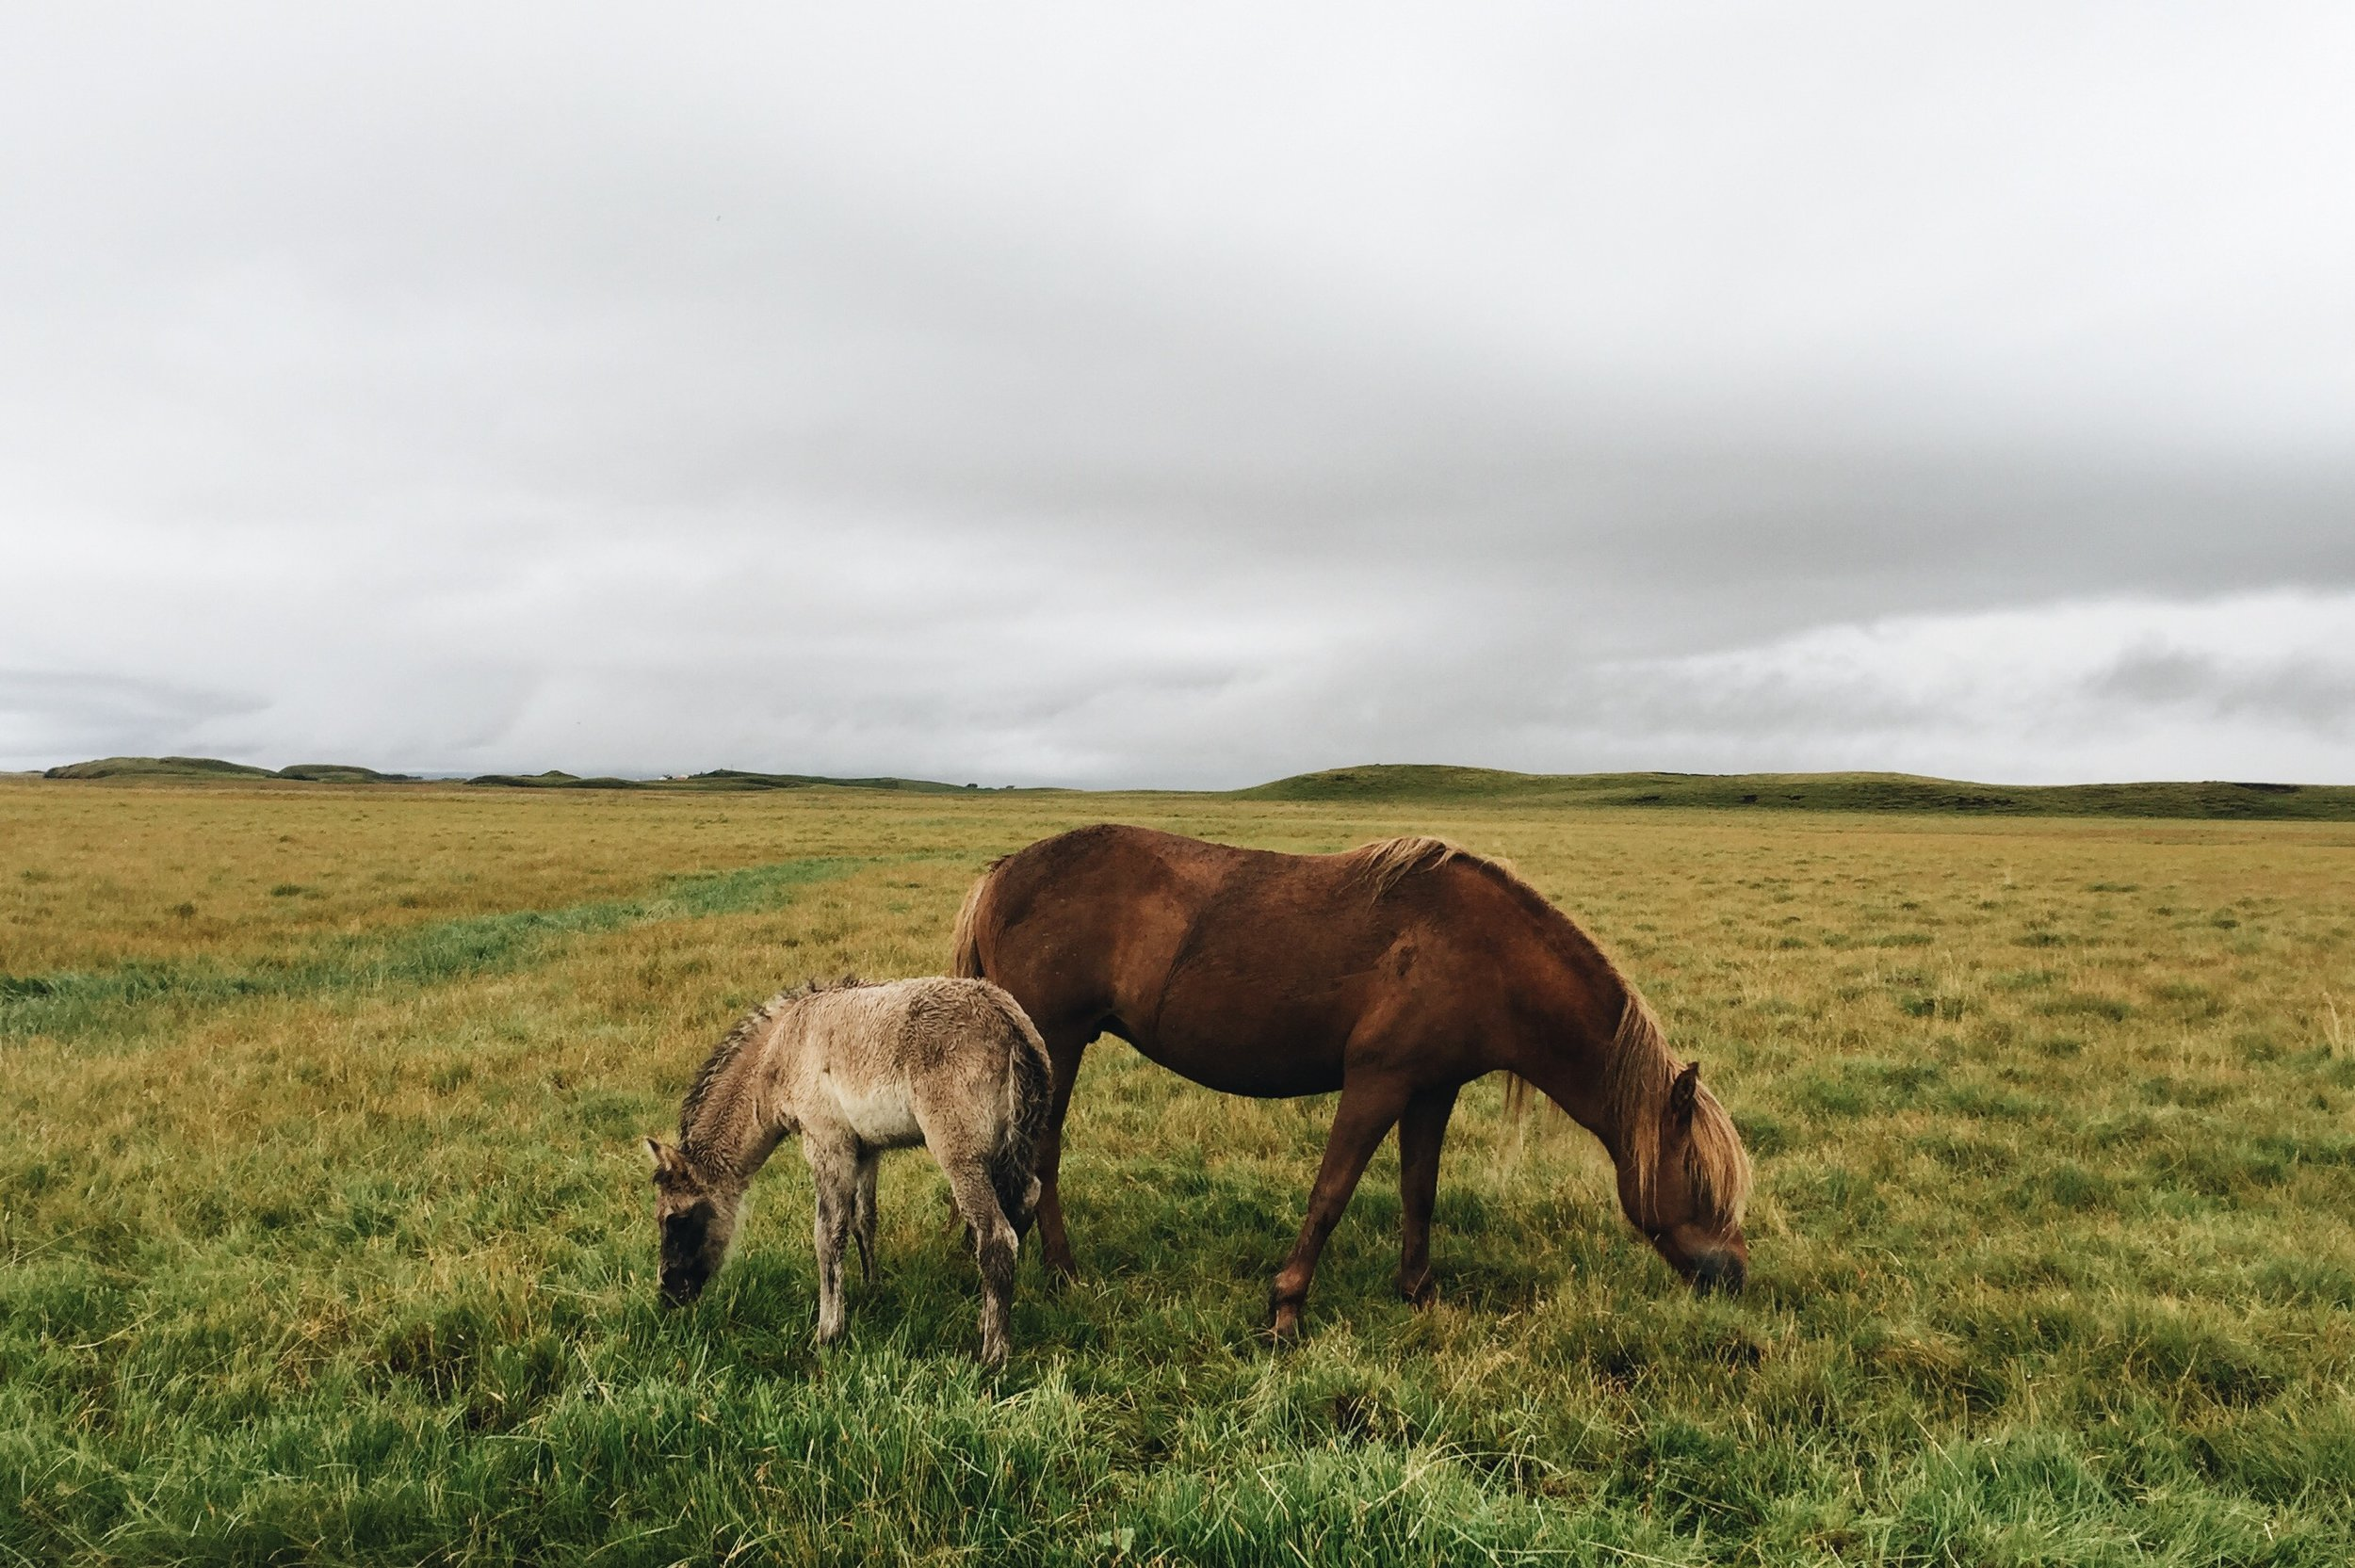 Mare and foal, Southeast Iceland